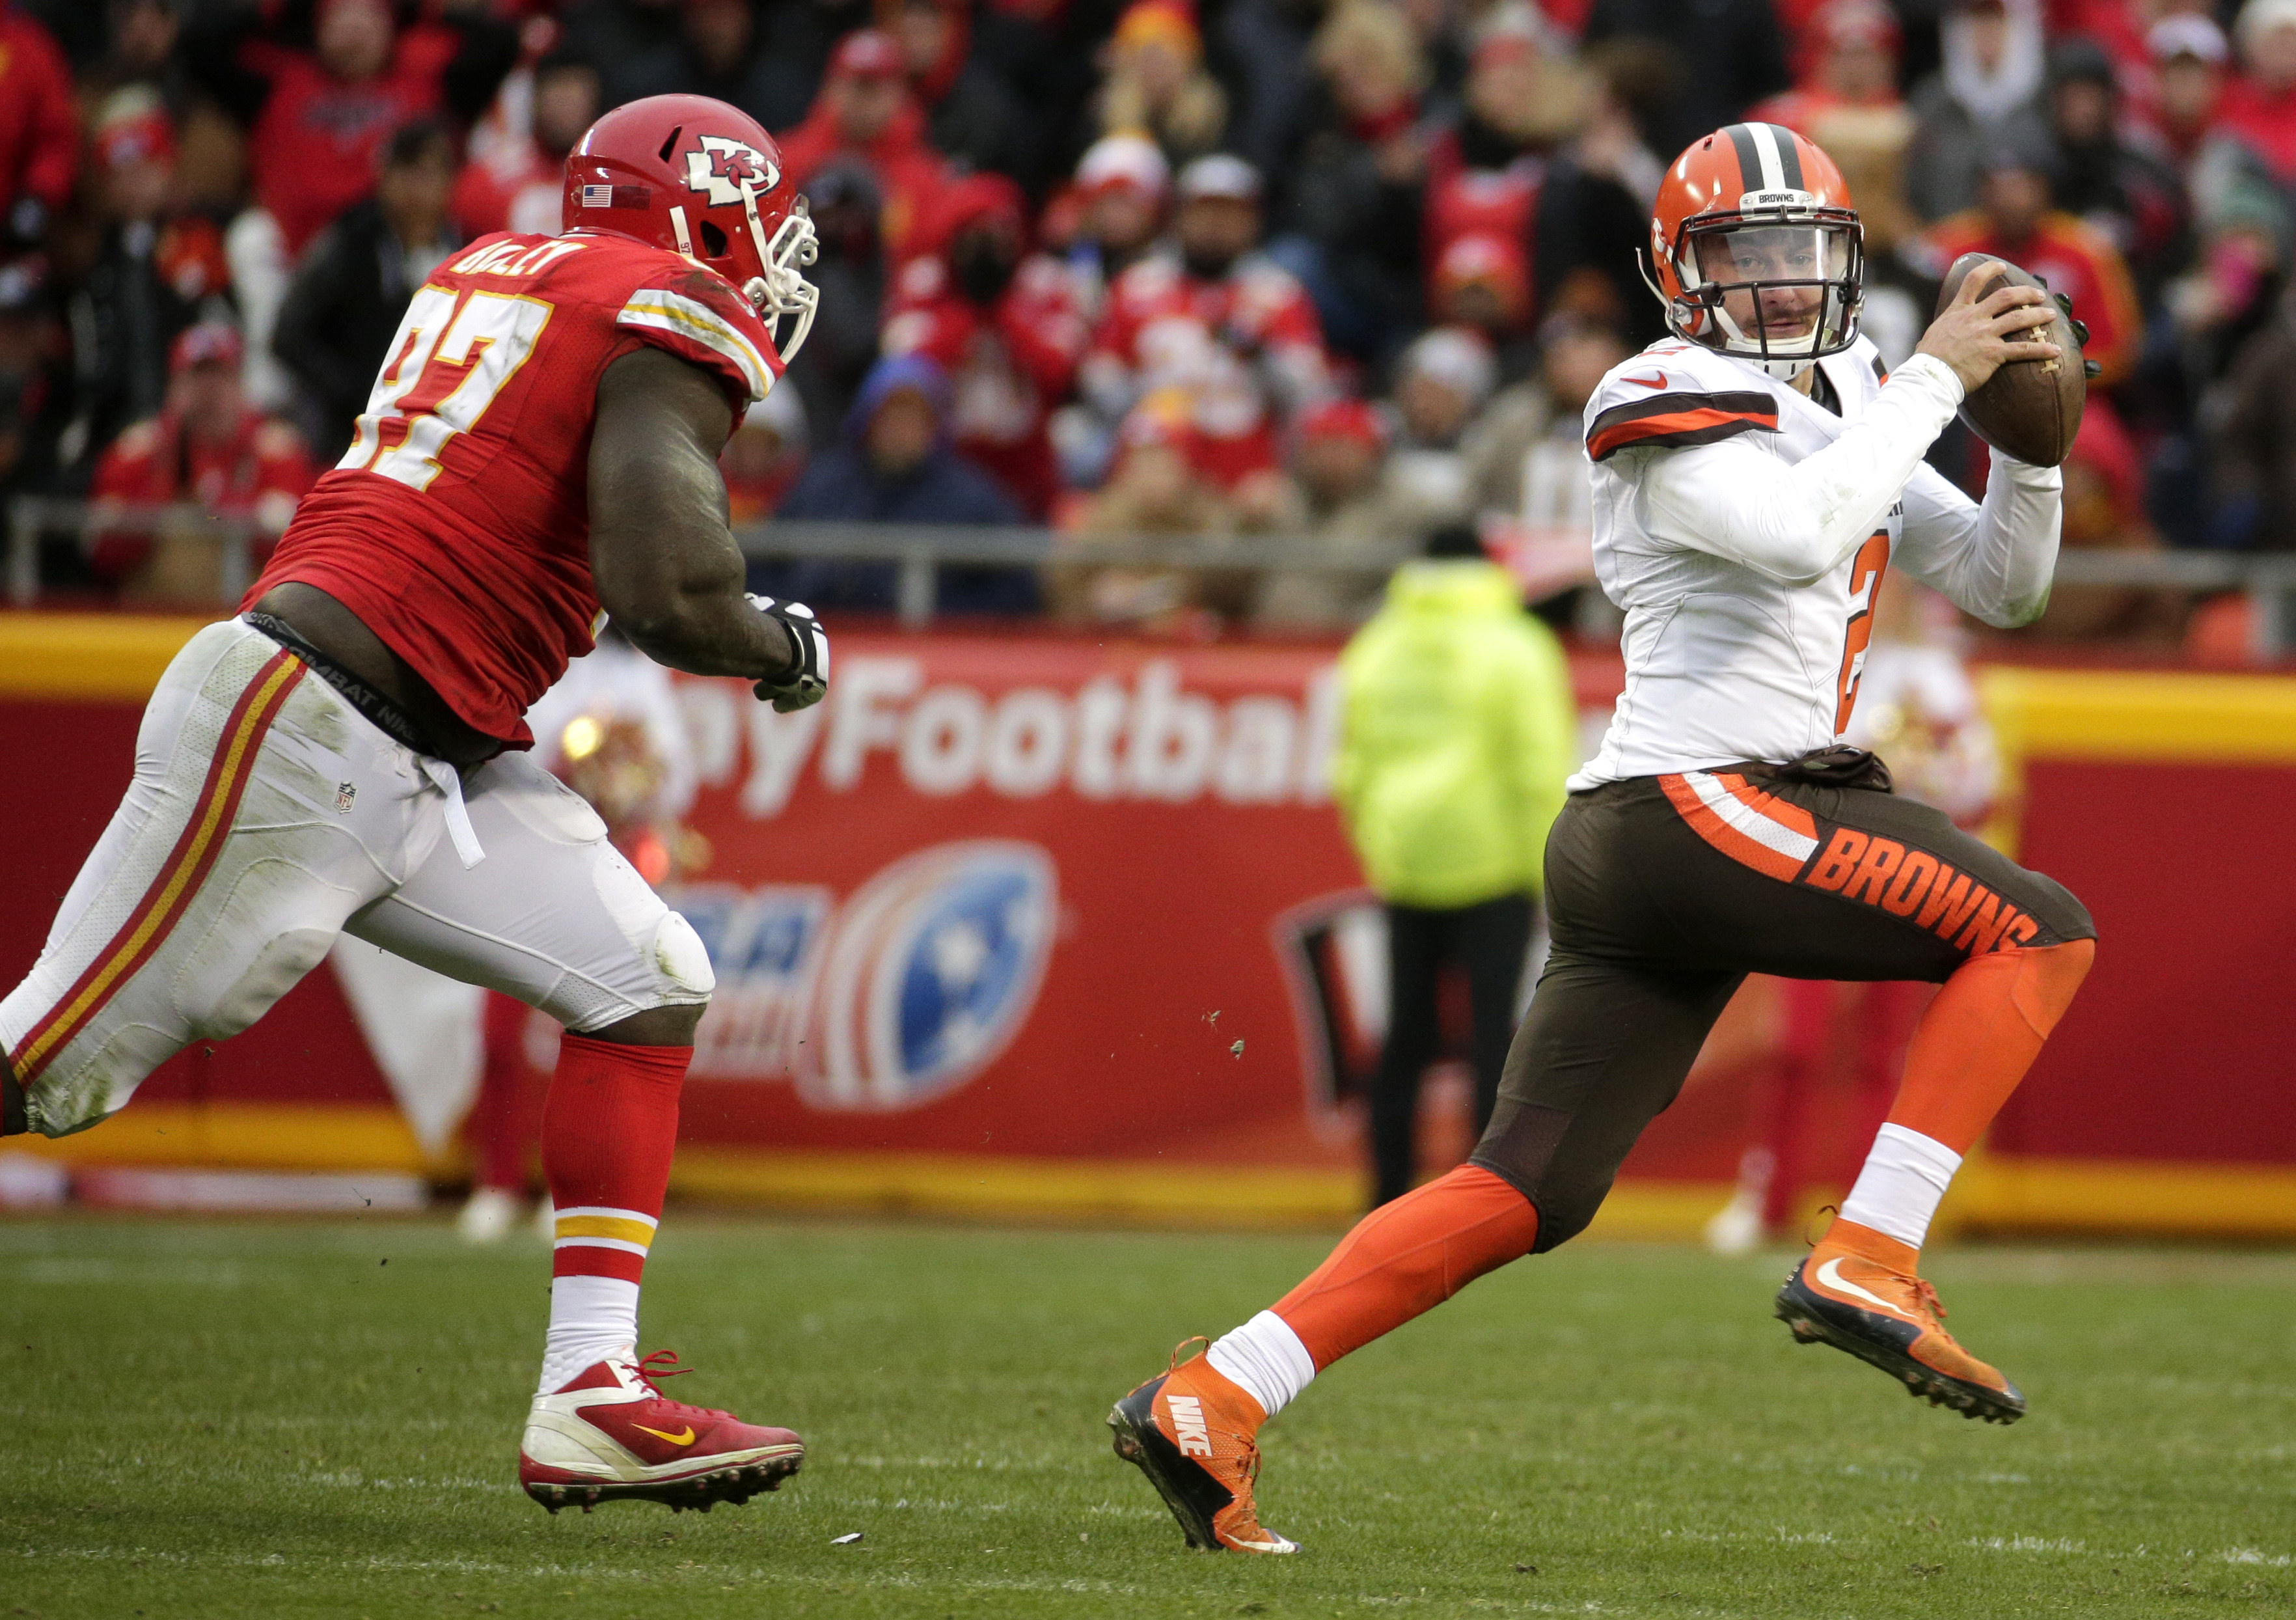 Cleveland Browns quarterback Johnny Manziel, right, runs away from Kansas City Chiefs defensive end Allen Bailey (97) during the second half of an NFL football game in Kansas City, Mo., Sunday, Dec. 27, 2015. (AP Photo/Charlie Riedel)